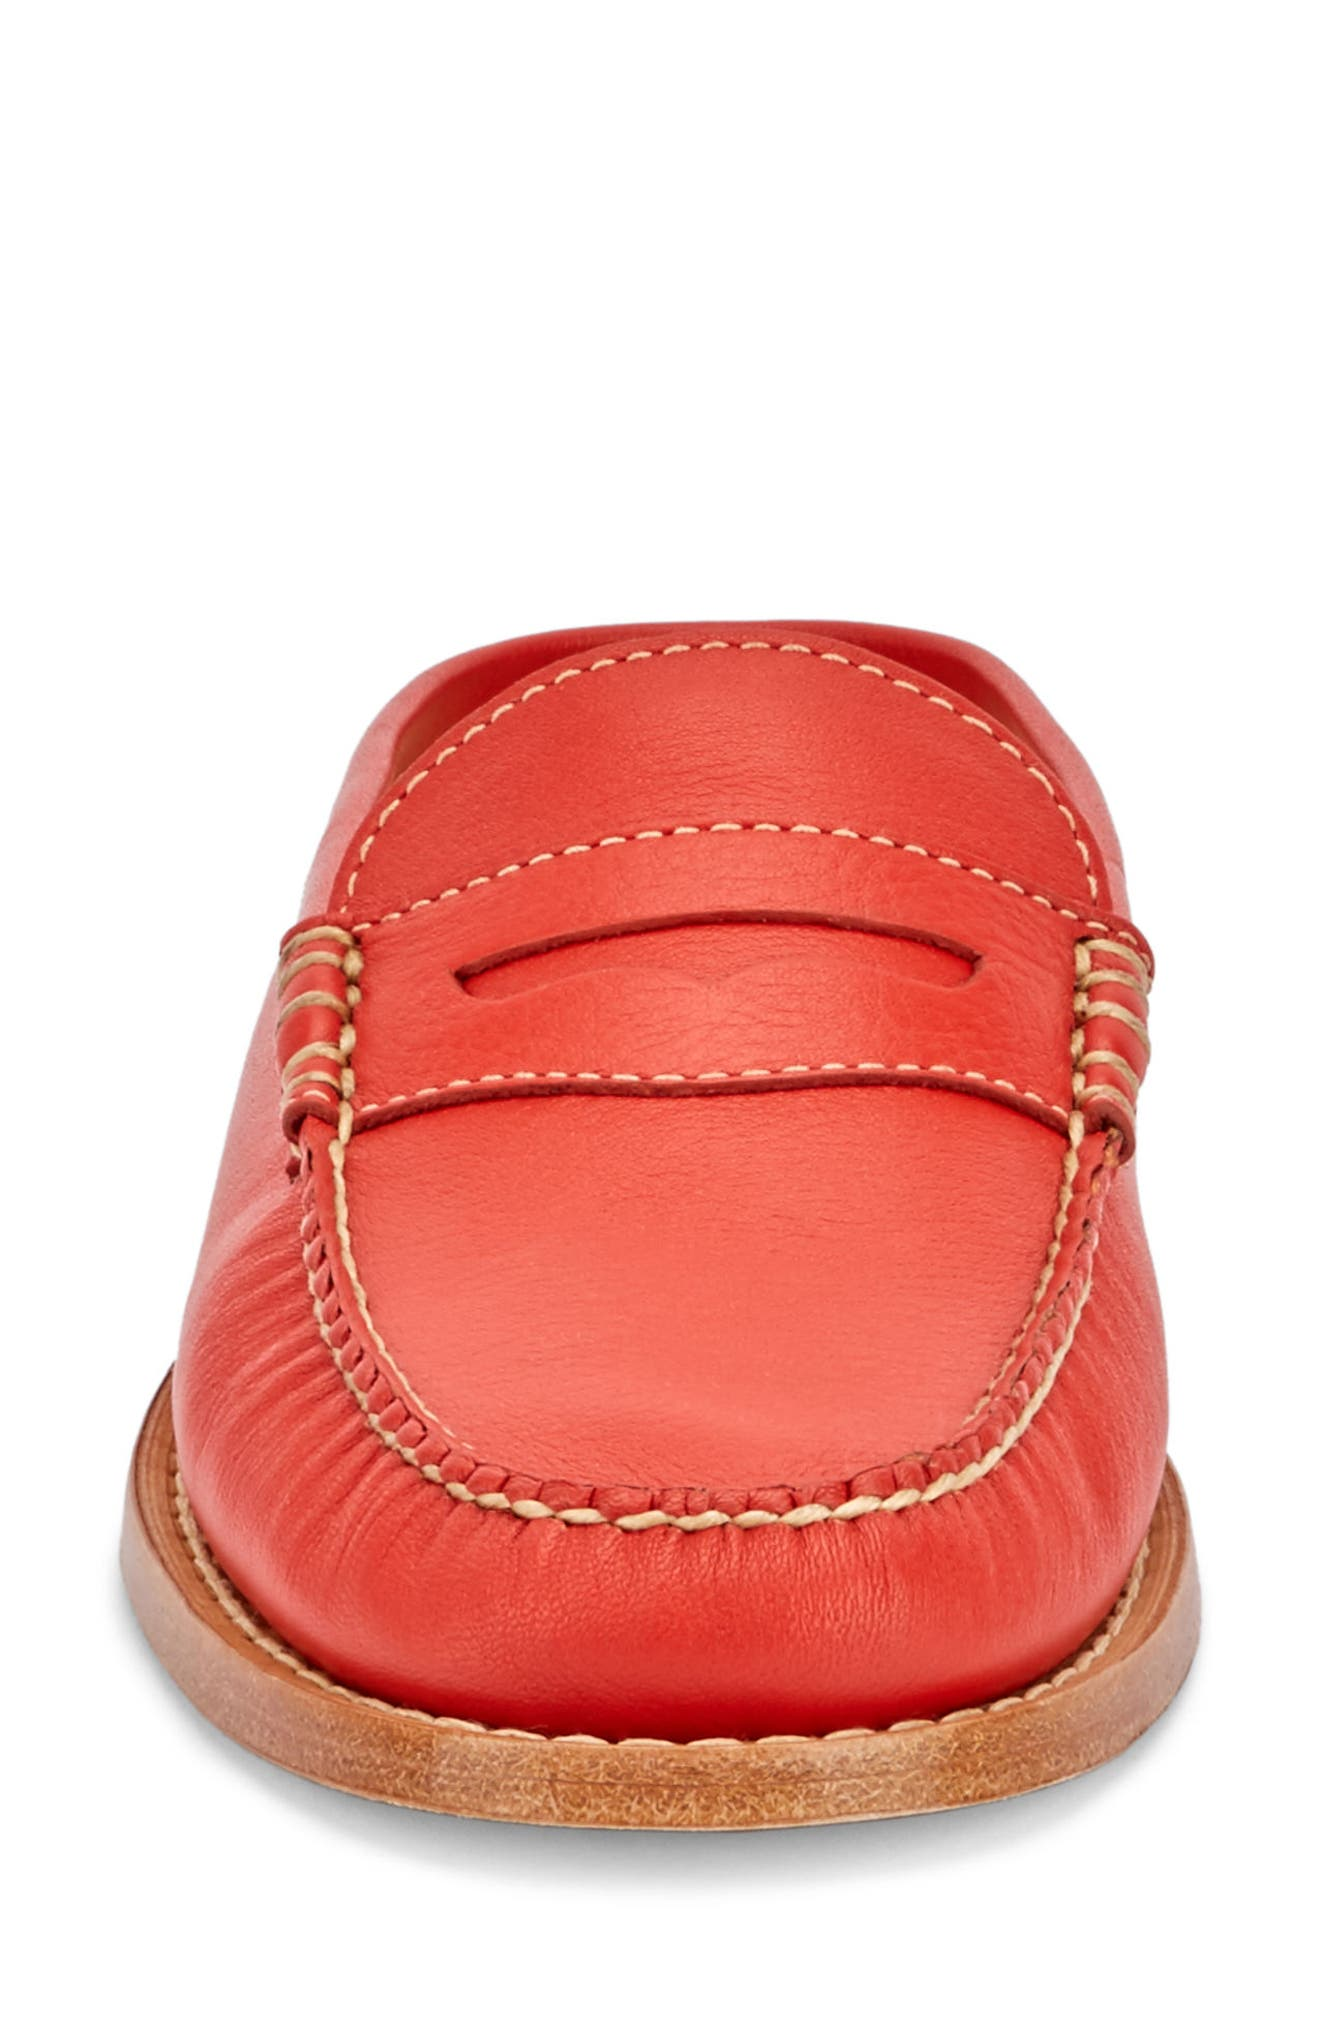 Wynn Loafer Mule,                             Alternate thumbnail 92, color,